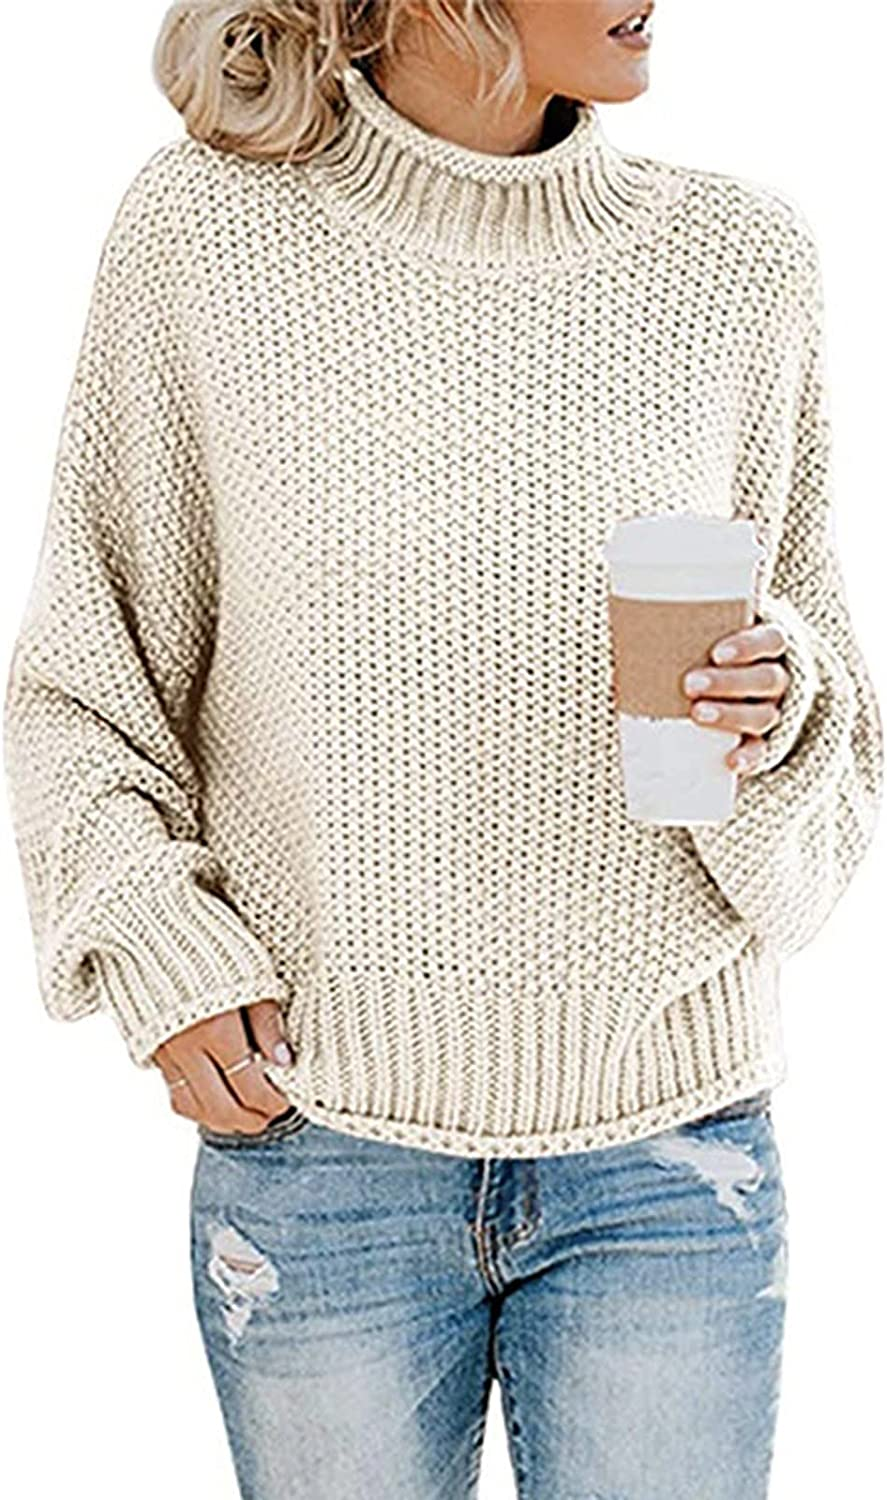 Womens Long Sleeve Tops Sweaters Loose Casual Solid Color Turtleneck Chunky Knitted Pullover Top